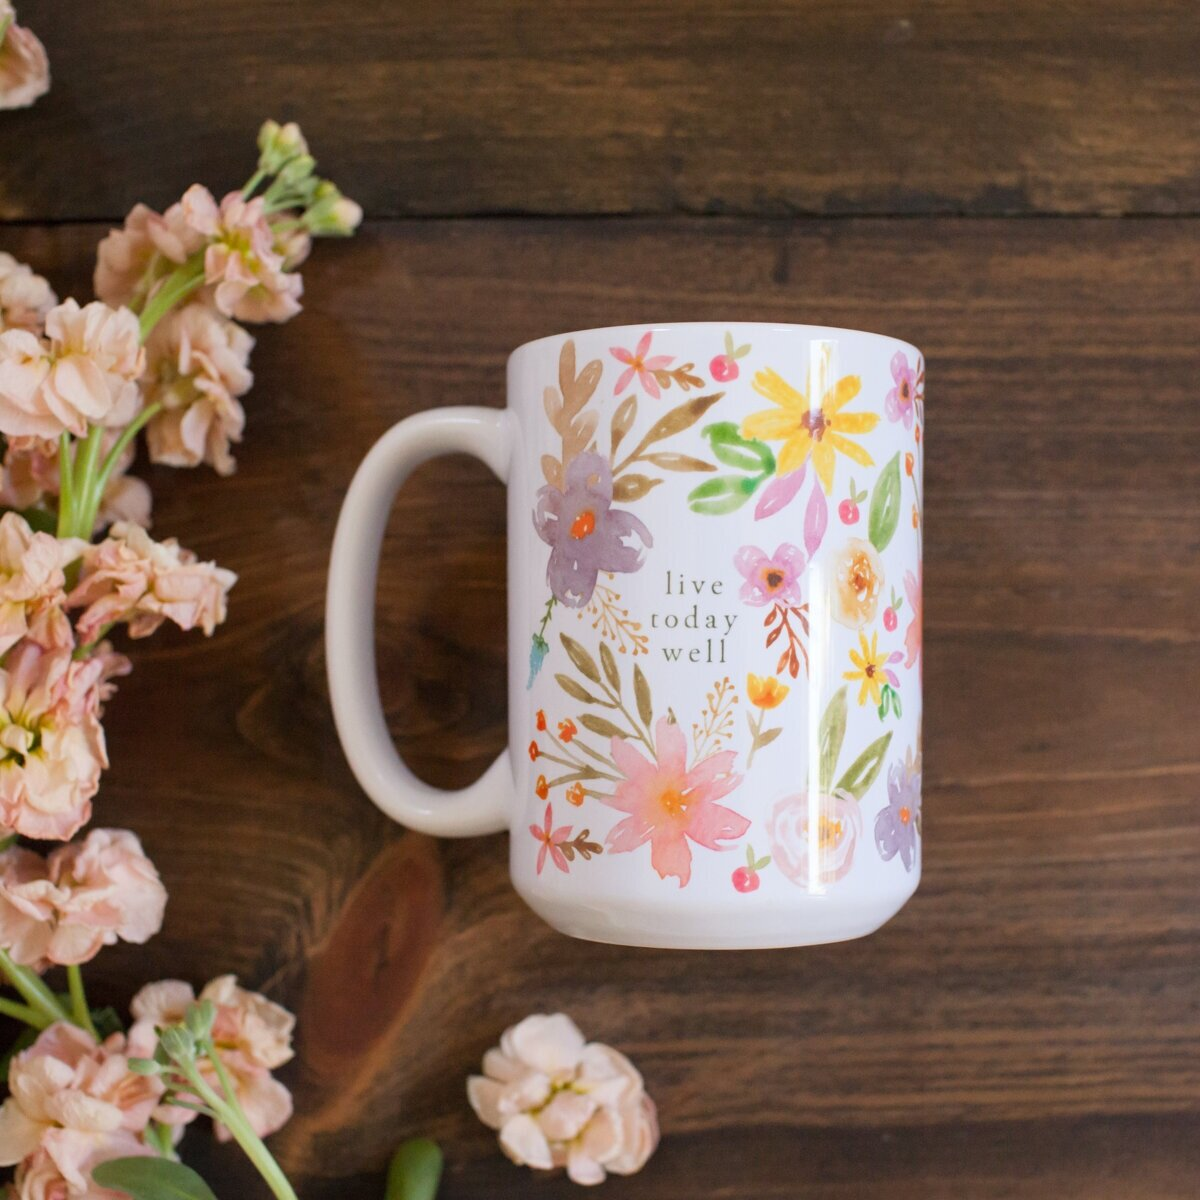 """Goodness, truth and beauty… As you chat with friends over a steaming hot pot of coffee or tea, this """" Live Today Well Mug """" reminds you to live each moment well."""